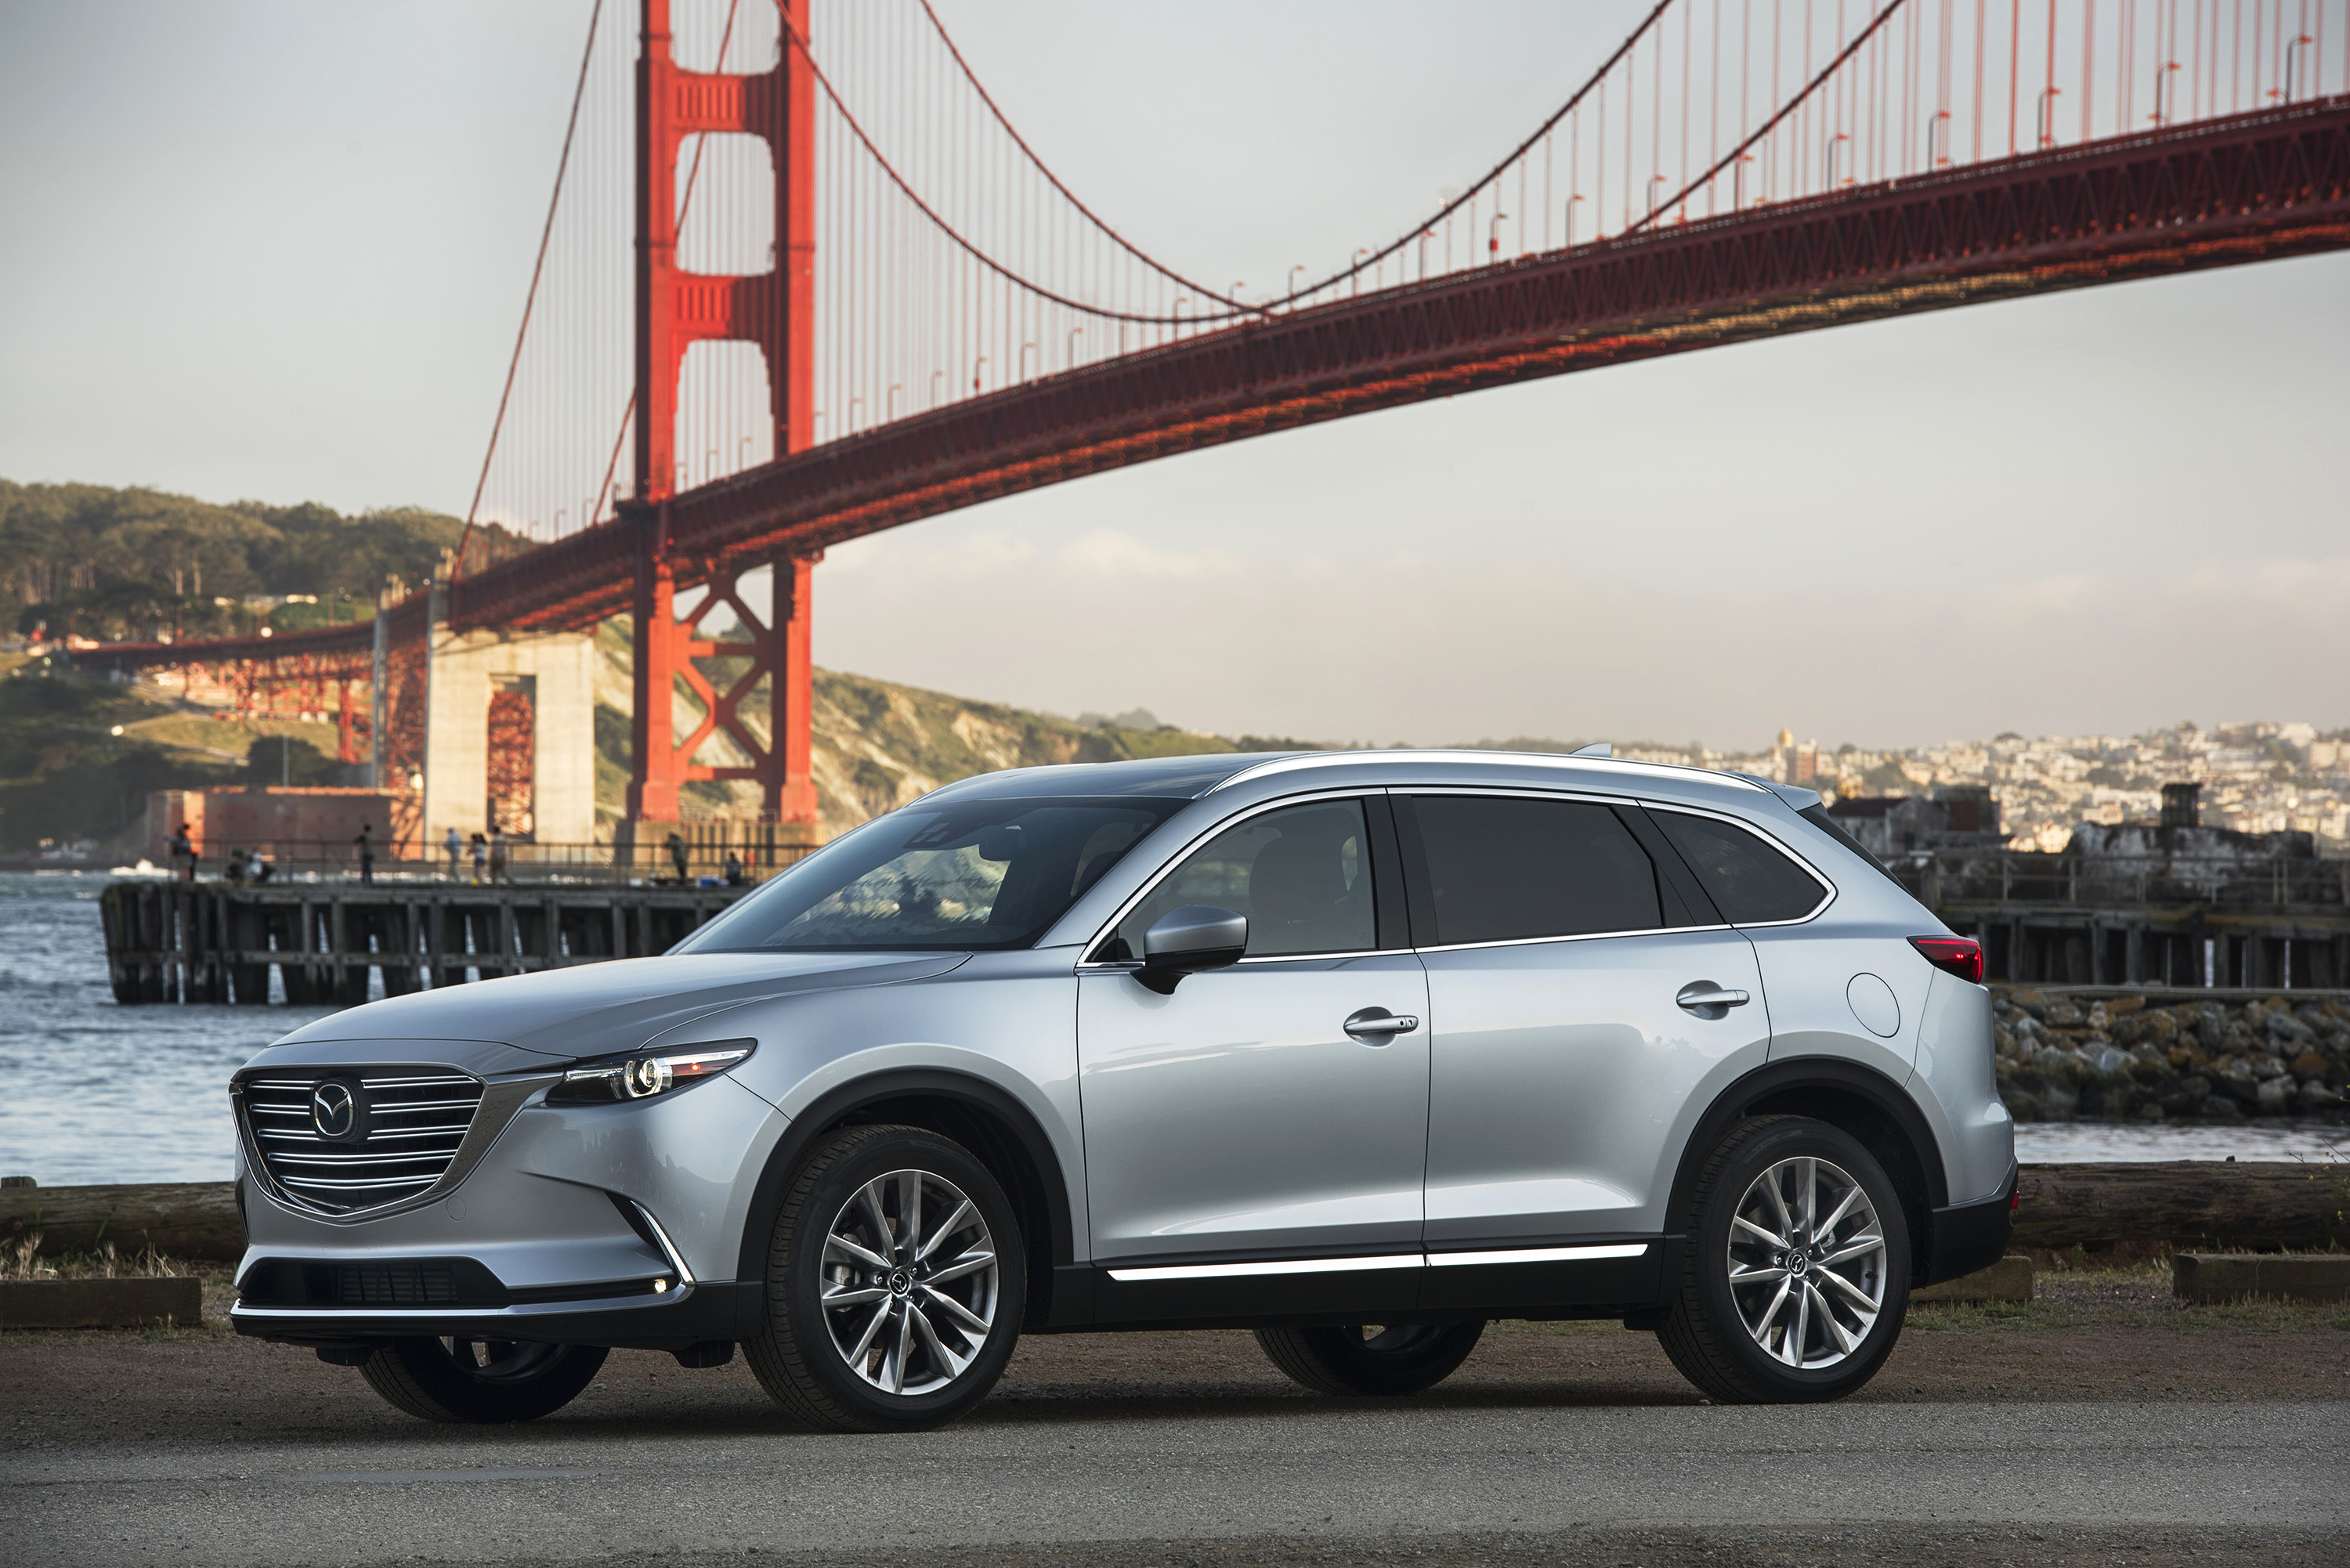 2018 mazda cx 9 grand touring awd what we liked and didnt like 2017cx9g thecheapjerseys Choice Image